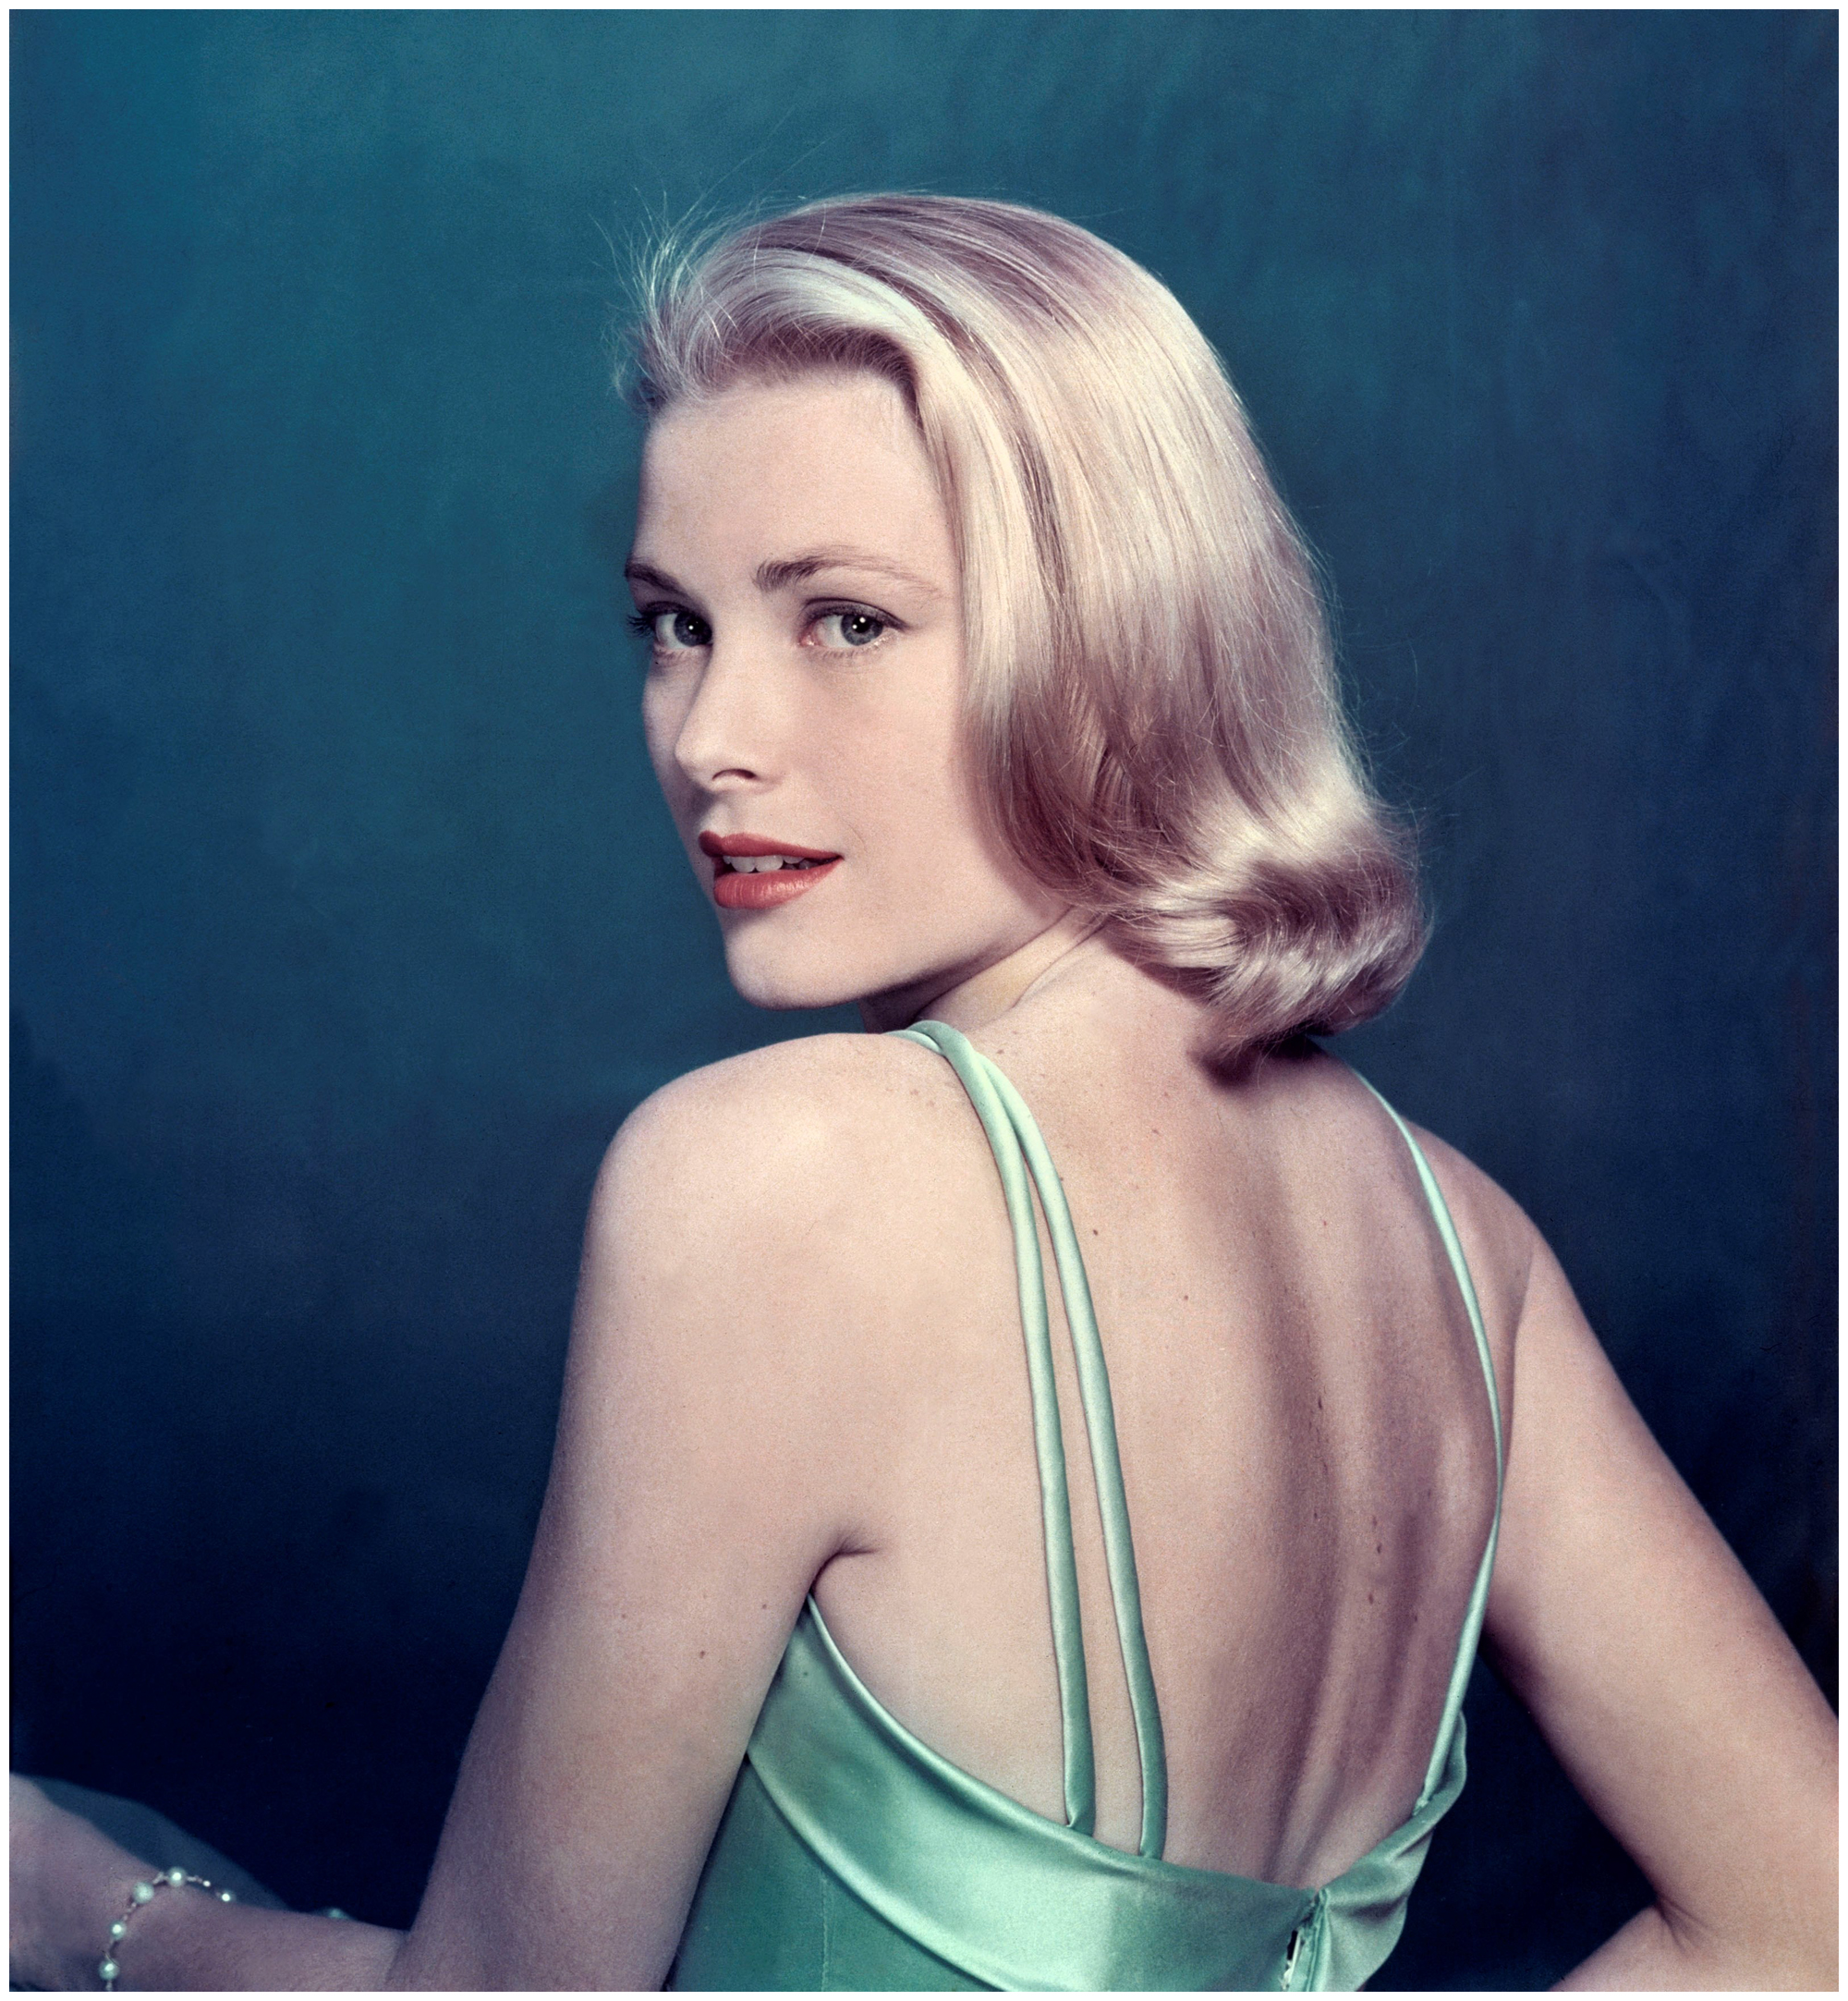 grace-kelly-posing-for-e2809clifee2809d-magazine-1954-philippe-halsmanmagnum-photos